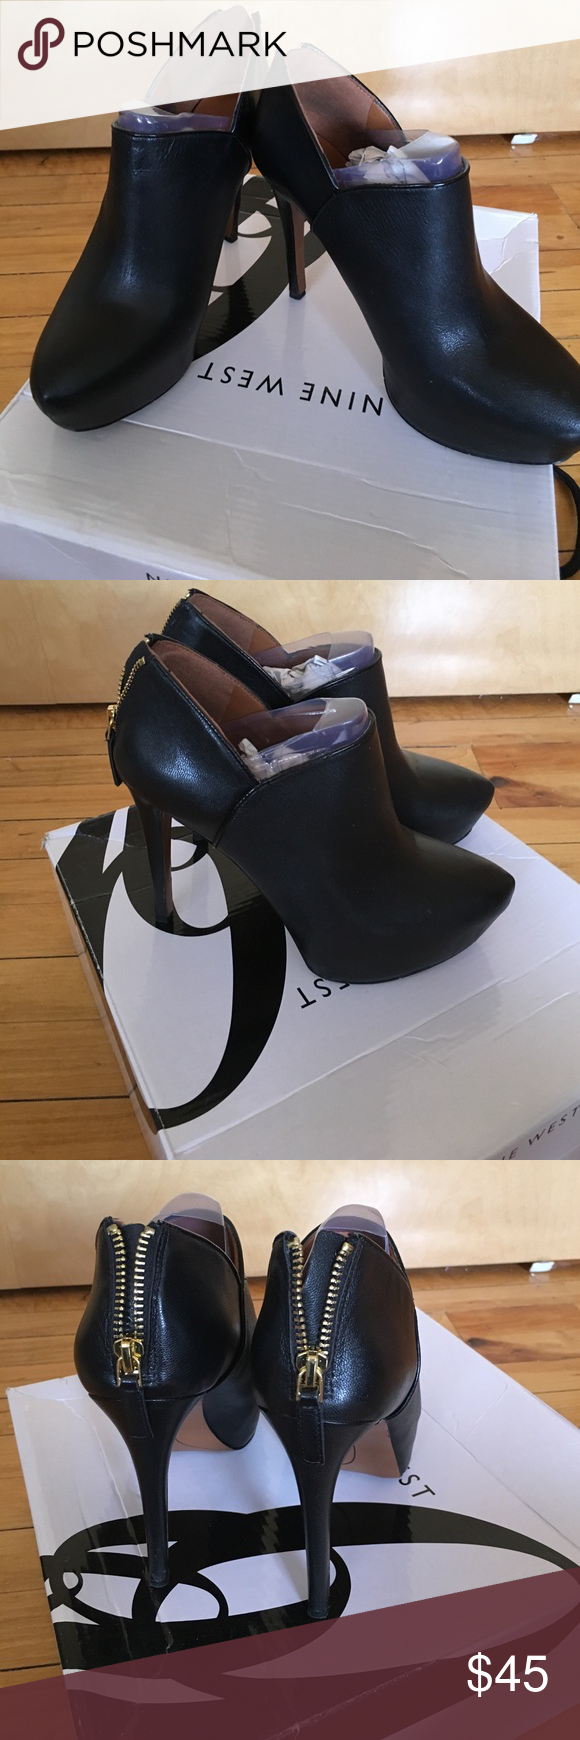 ab0946dbf5d9 Nine West platform booties Absolutely LOVE these booties